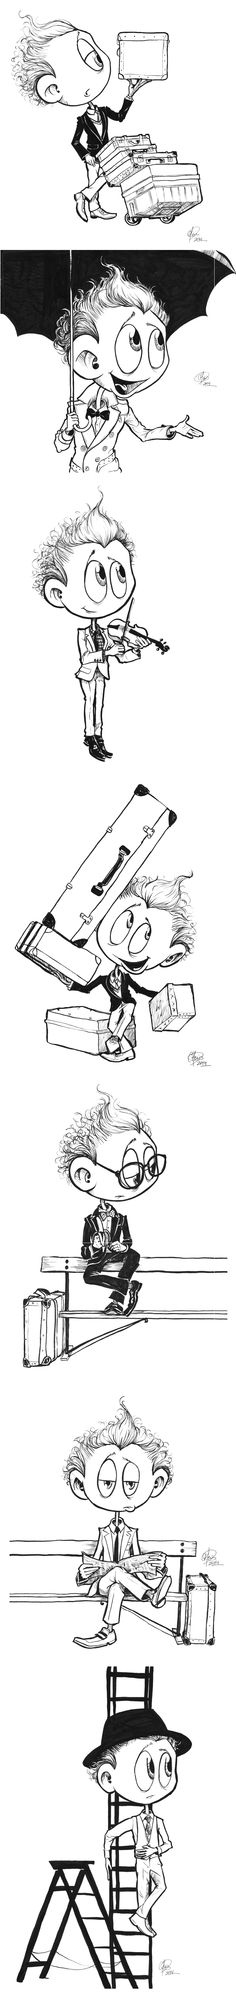 Just when I thought Tom Hiddleston couldn't get any cuter, someone had to go & make this fan art.